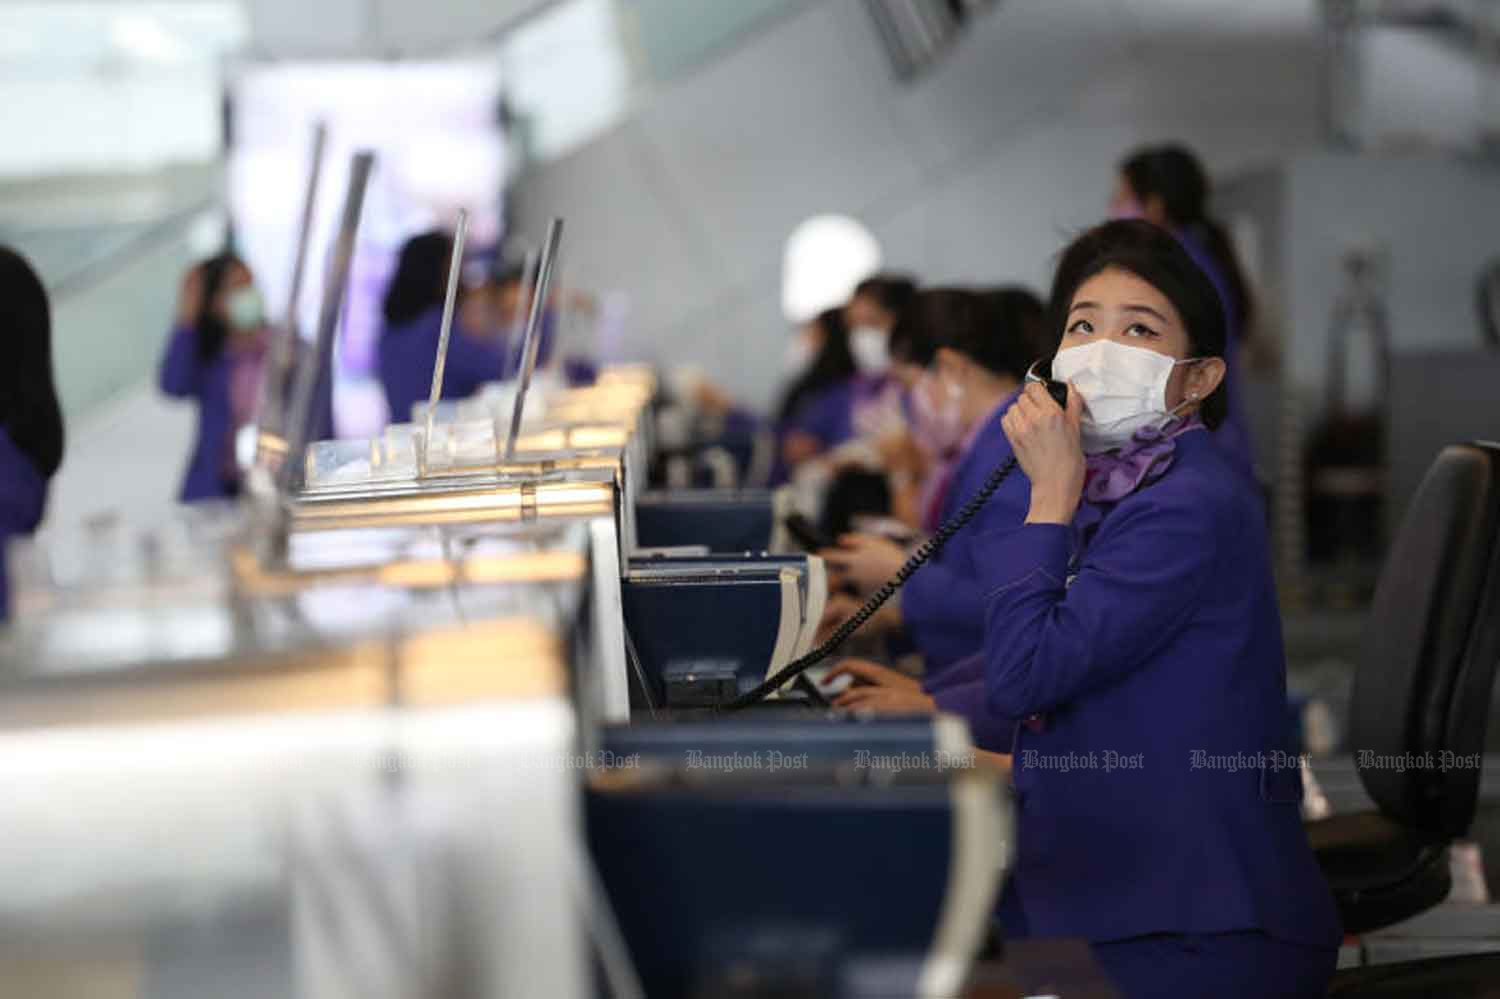 Thai Airways International staff at work at Suvarnabhumi airport during the pandemic. (File photo: Varuth Hirunyatheb)